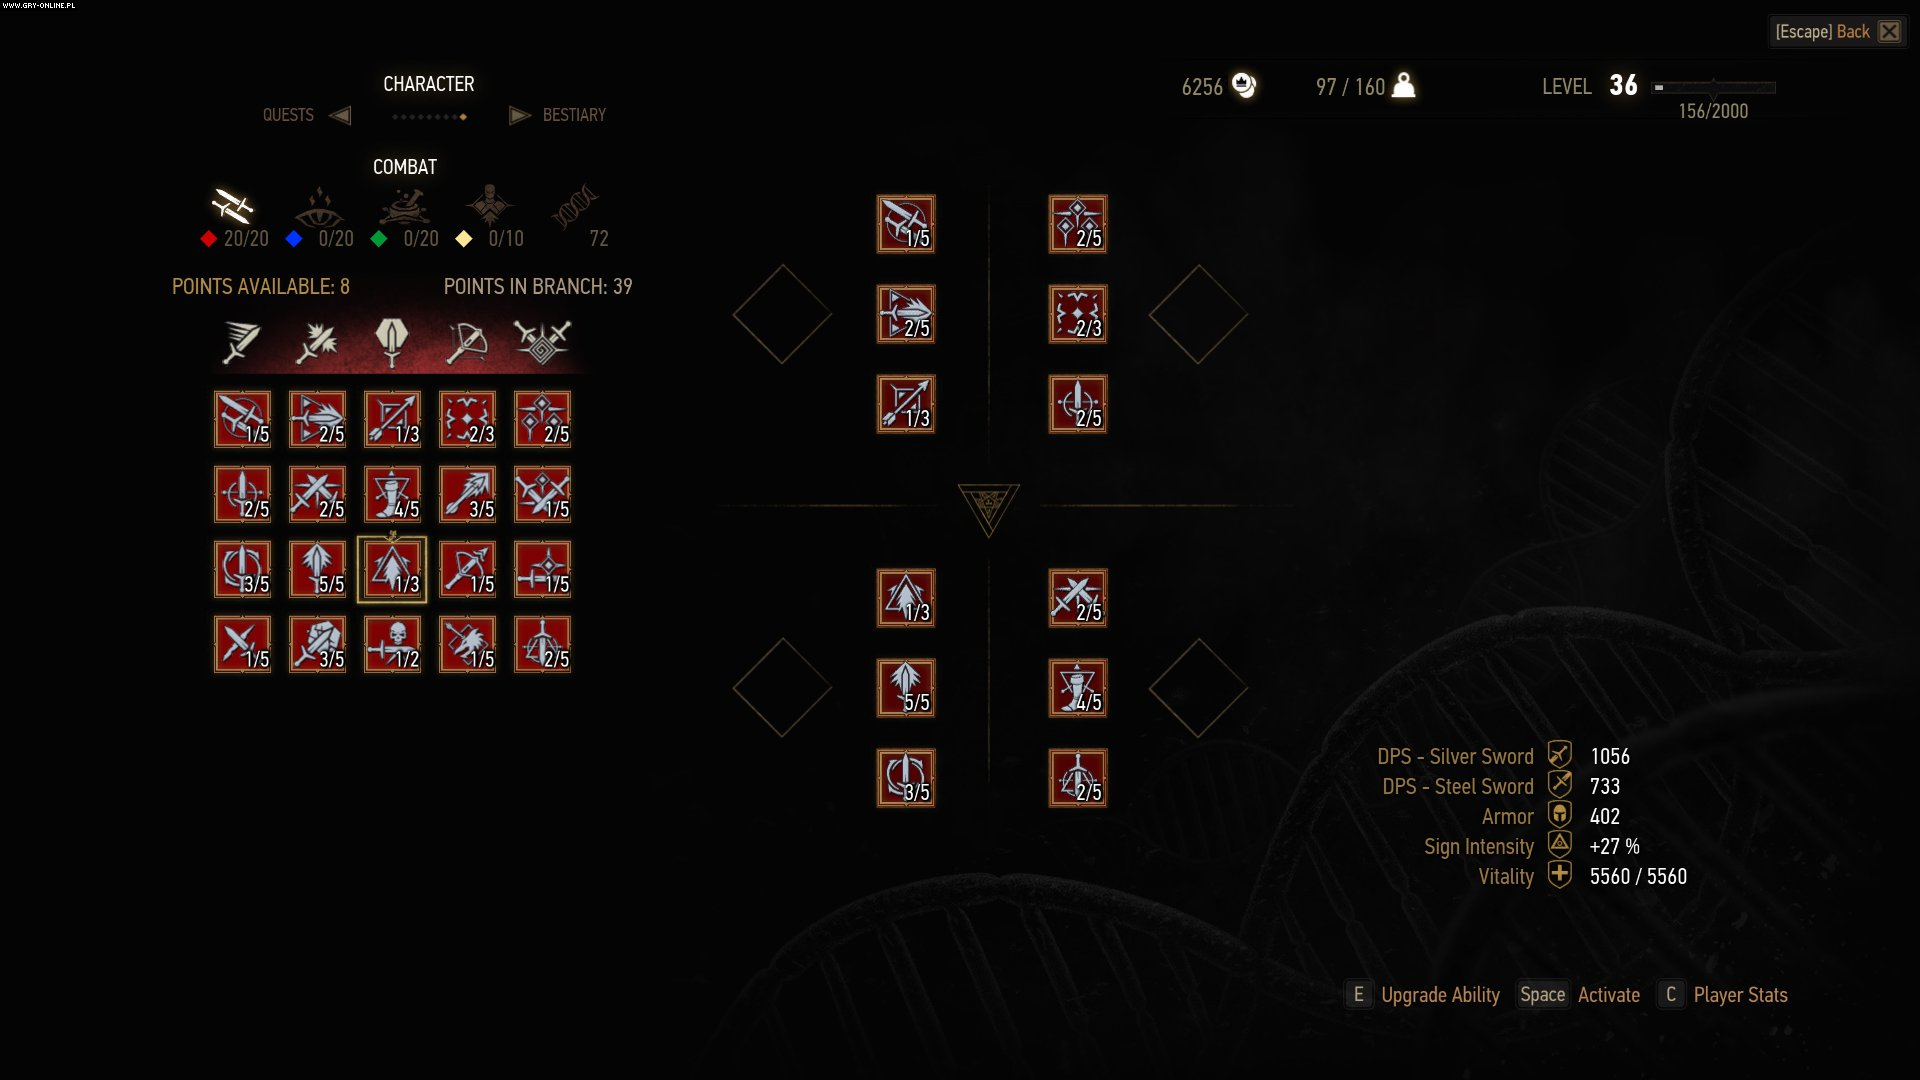 Weapon slots witcher 3 : Platinum play casino download free